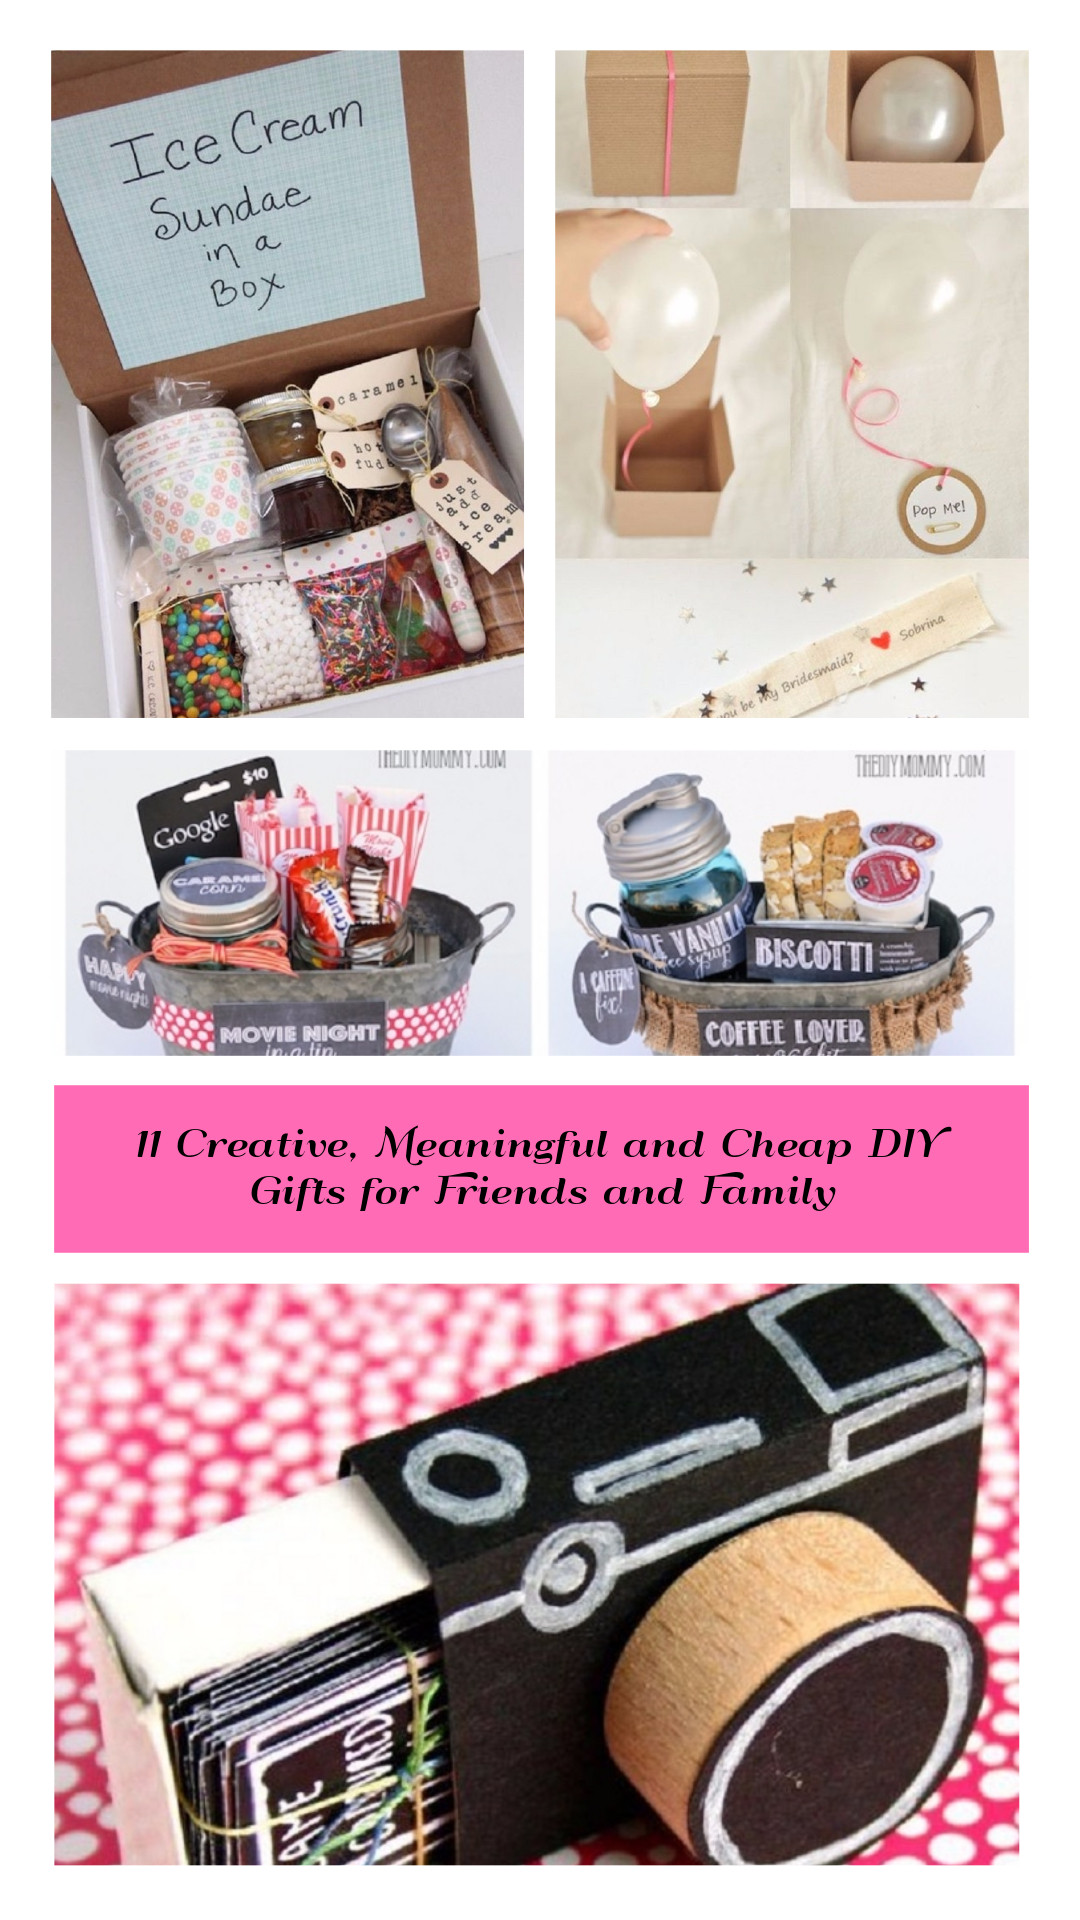 Best Friend Gift Ideas Diy  11 Creative Meaningful and Cheap DIY Gifts for Friends